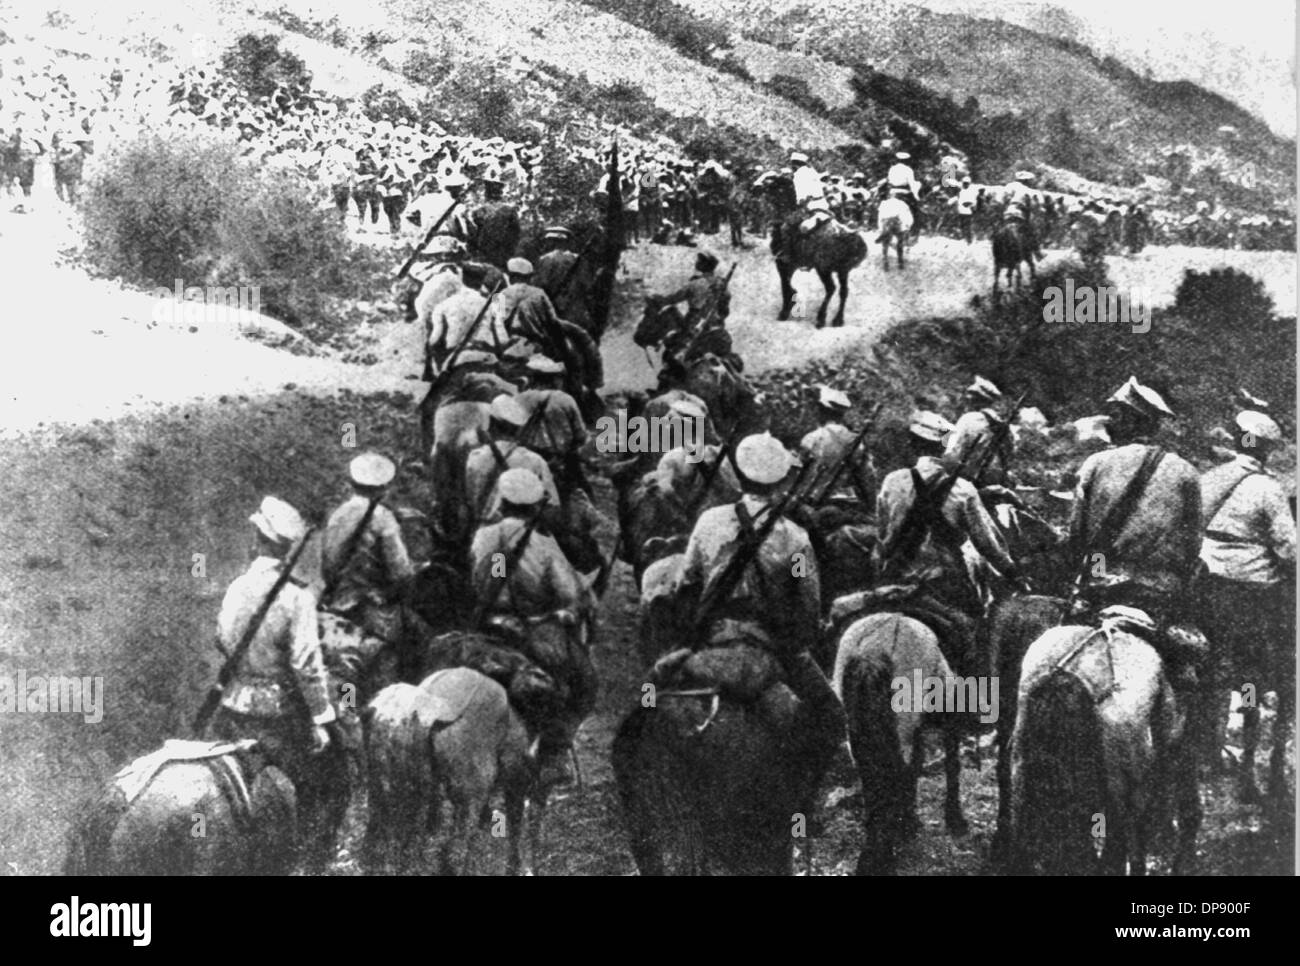 Russian cavalry in the Caucasus (undated). The deadly shots by Serbian nationalists on the Austrian heir to the throne Franz Ferdinand on the 28th of June in 1914 in Sarajevo caused the outbreak of the Great War, later to be called World War I, in August 1914. The Central Powers, namely Germany, Austria-Hungary and as well later the Ottoman Empire (Turkey) and Bulgaria against the Triple Entente, consisting of Great Britain, France and Russia, as well as numerous allies. The sad result of World War I, which ended with the defeat of the Central Powers: round 8.5 million soldiers killed in act - Stock Image